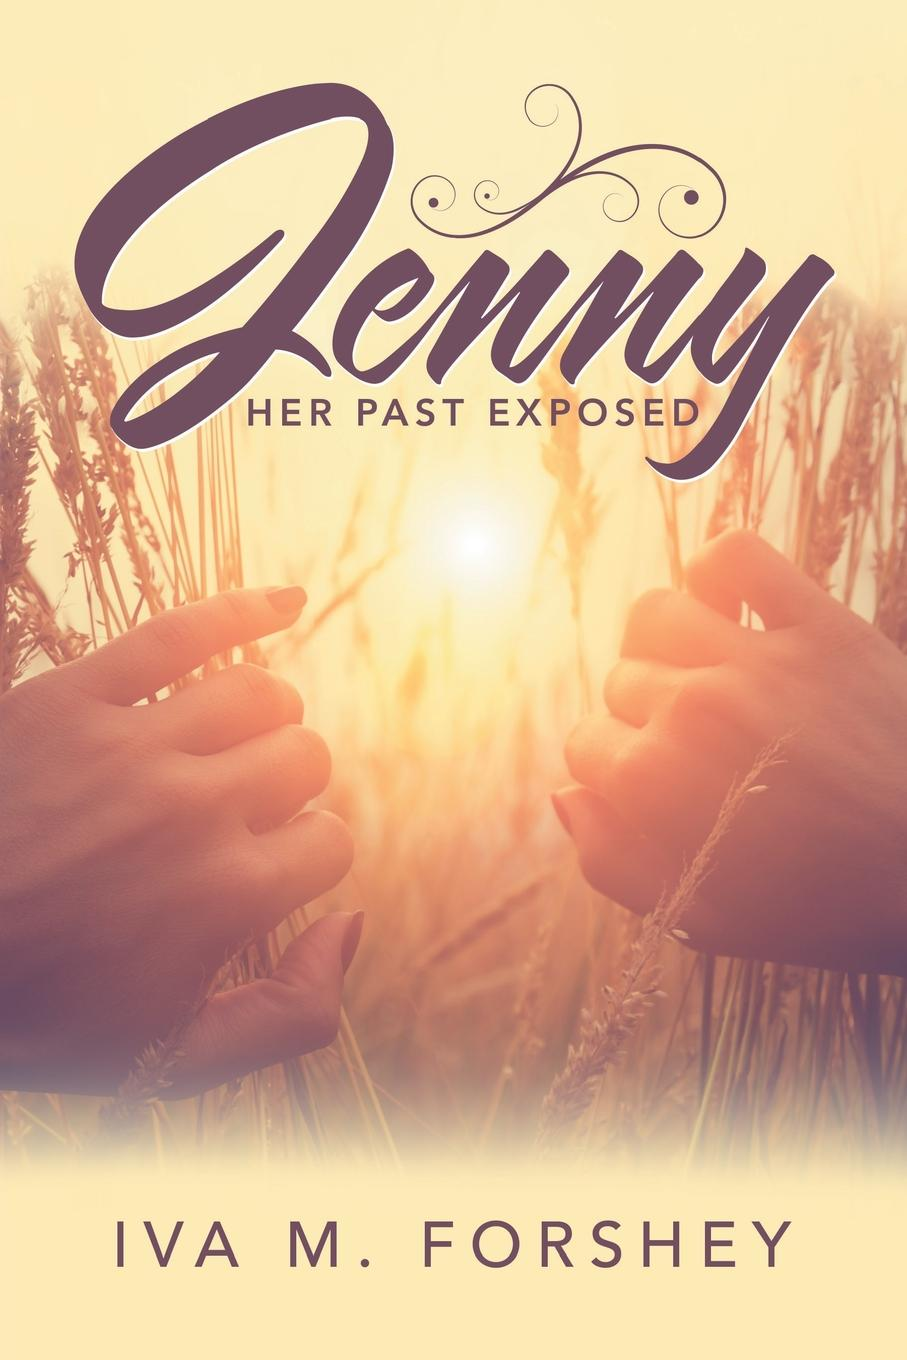 Фото - Iva M. Forshey Jenny. Her Past Exposed diane marsh triumph of her will